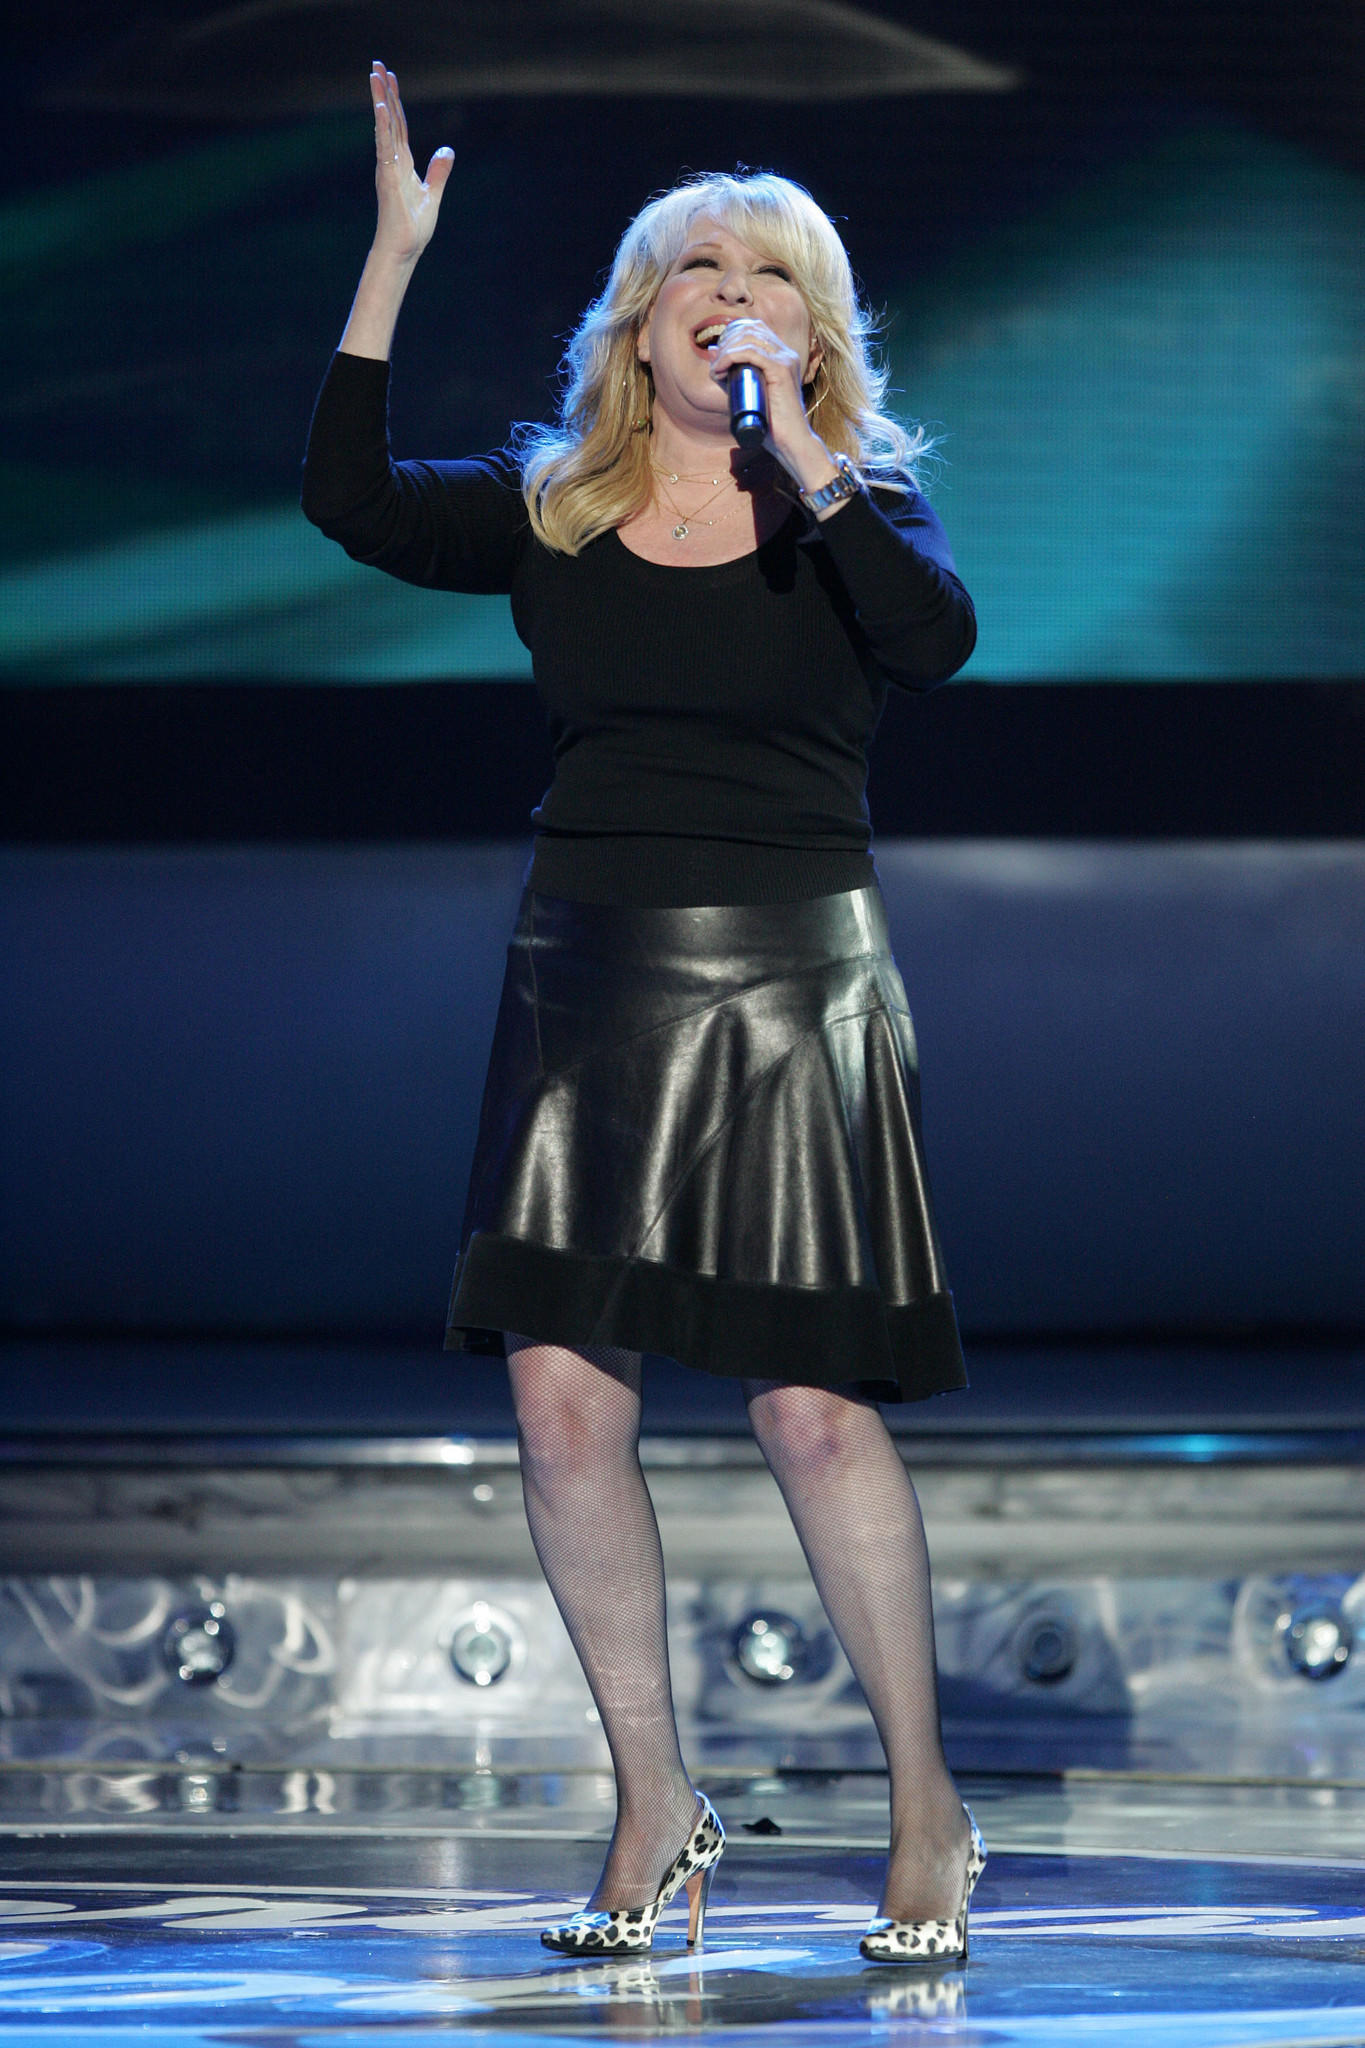 Bette Midler performs at the Kodak Theatre during the American Idol Season 6 Finale.